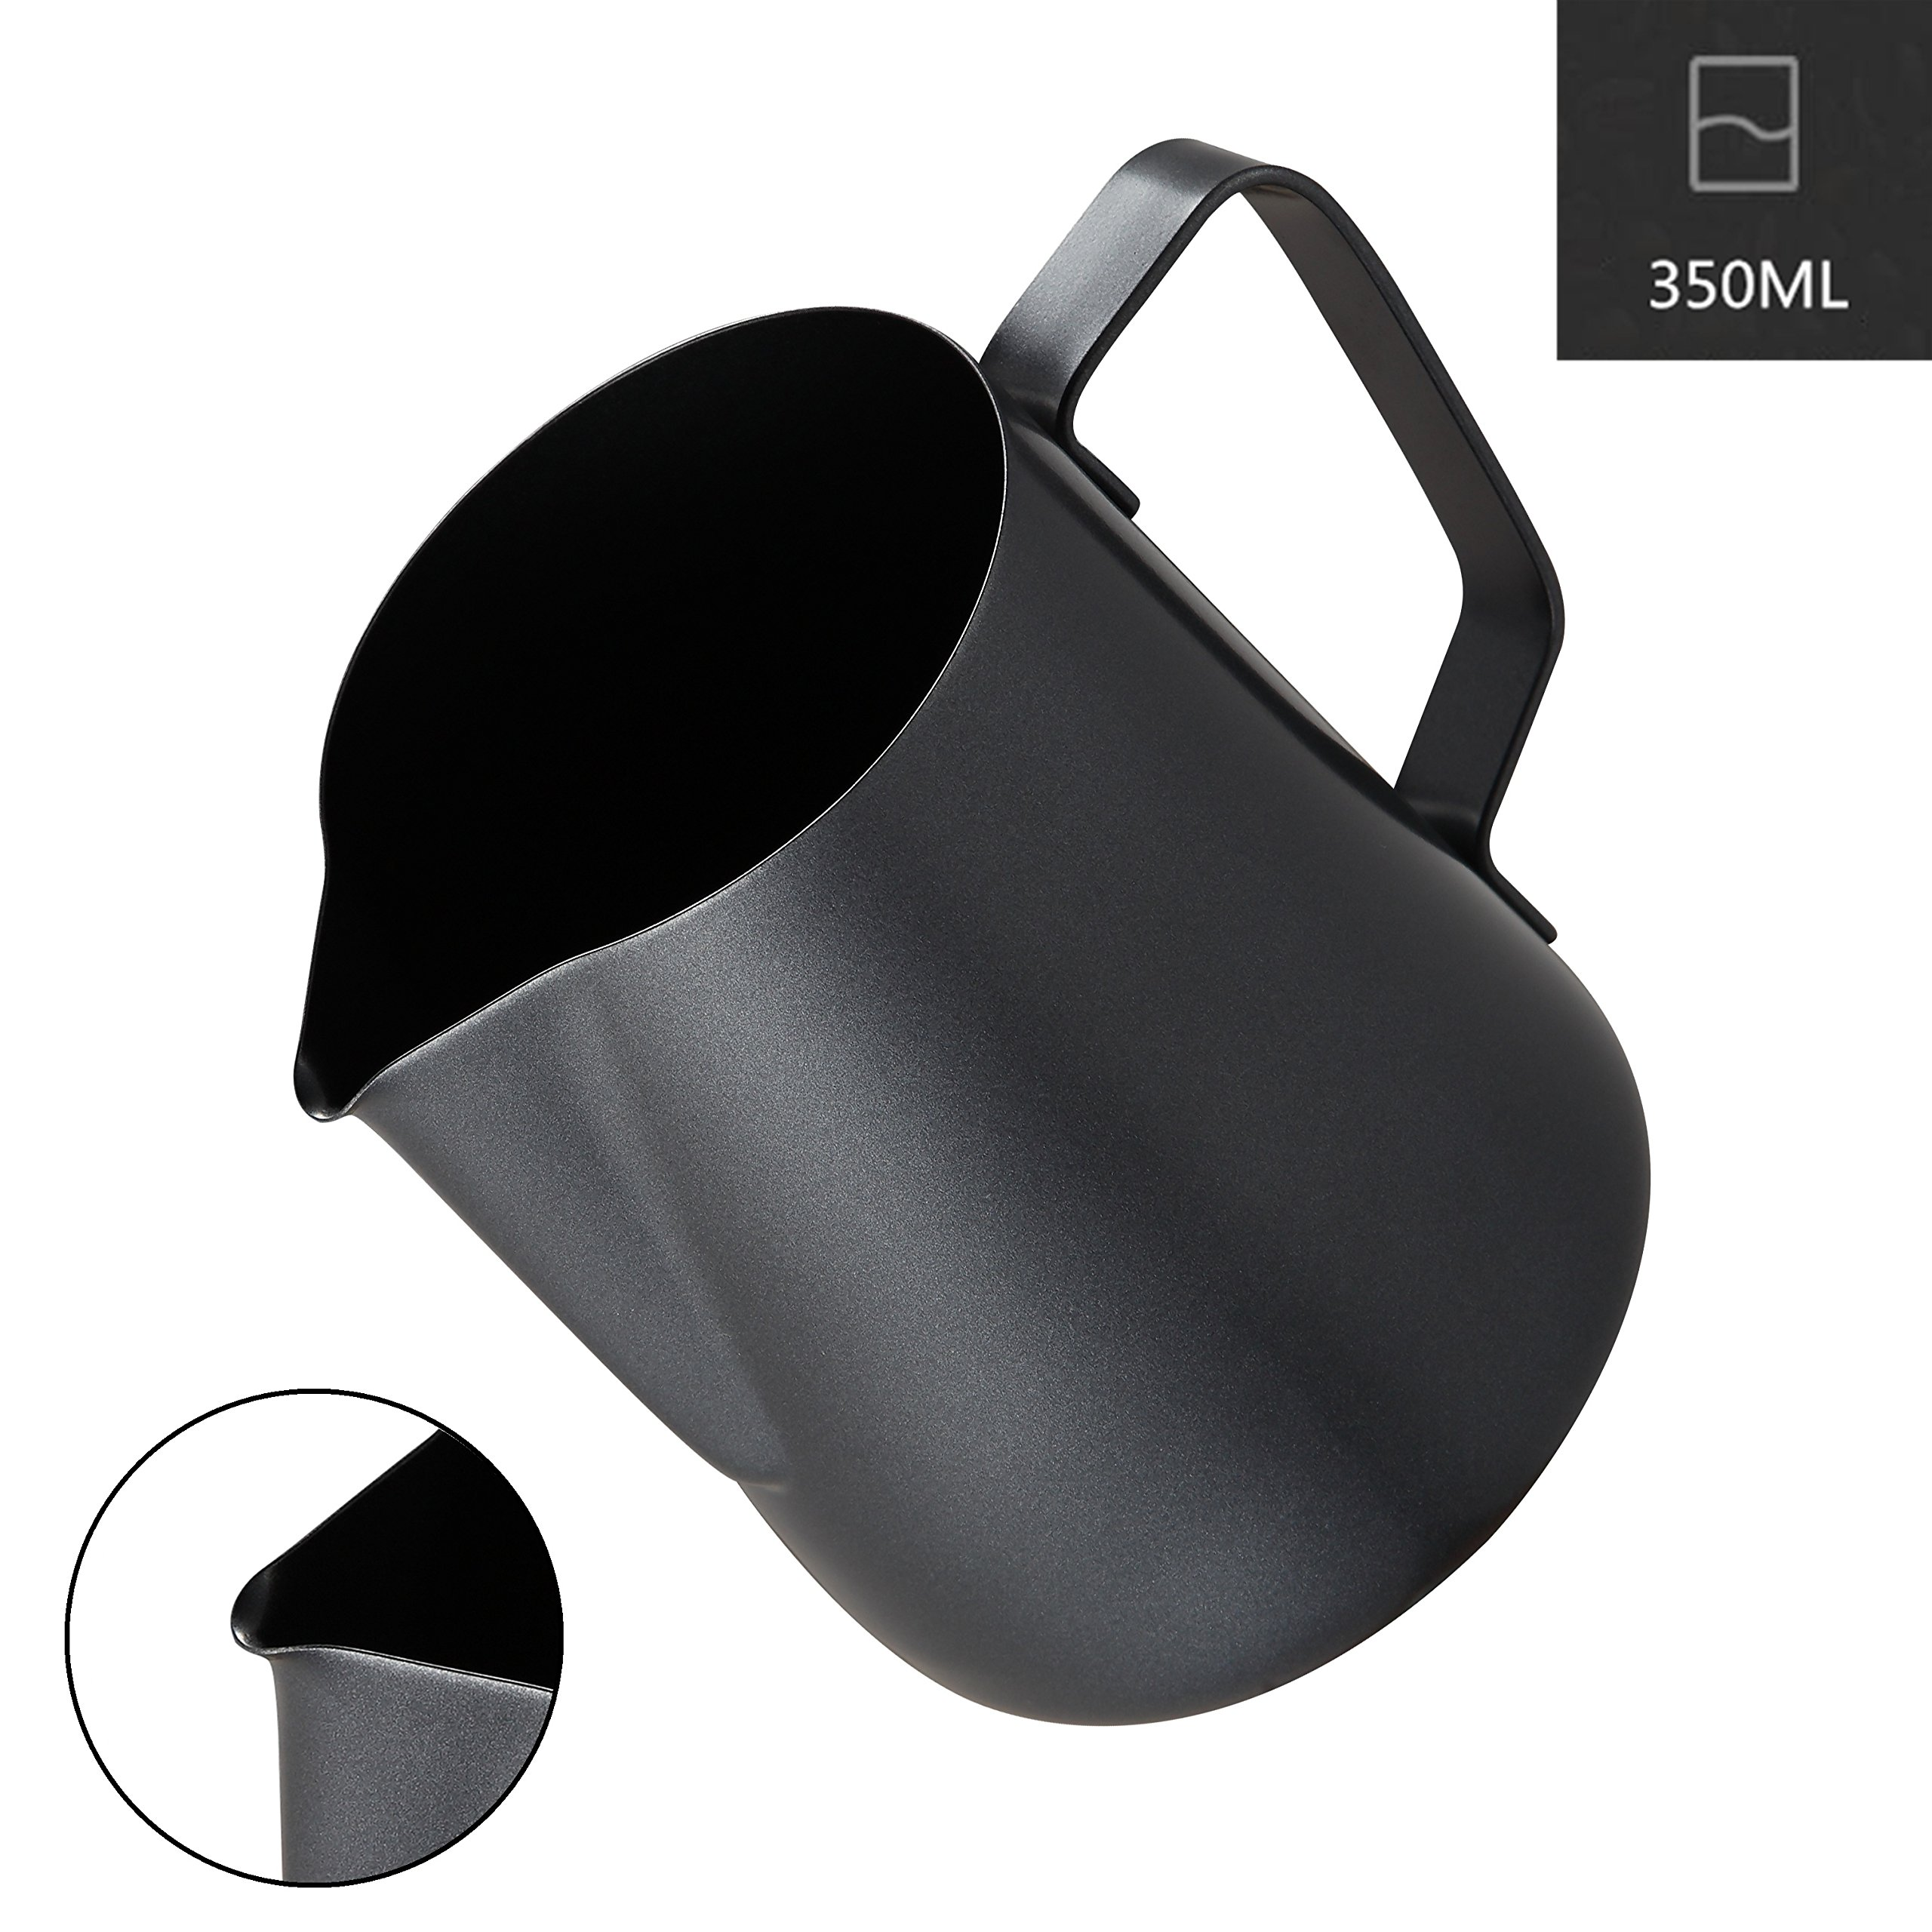 Milk Frothing Pitcher, Coffee4u Stainless Steel Creamer Non-Stick Teflon Frothing Pitcher 12 oz (350 ml), Matte Finish